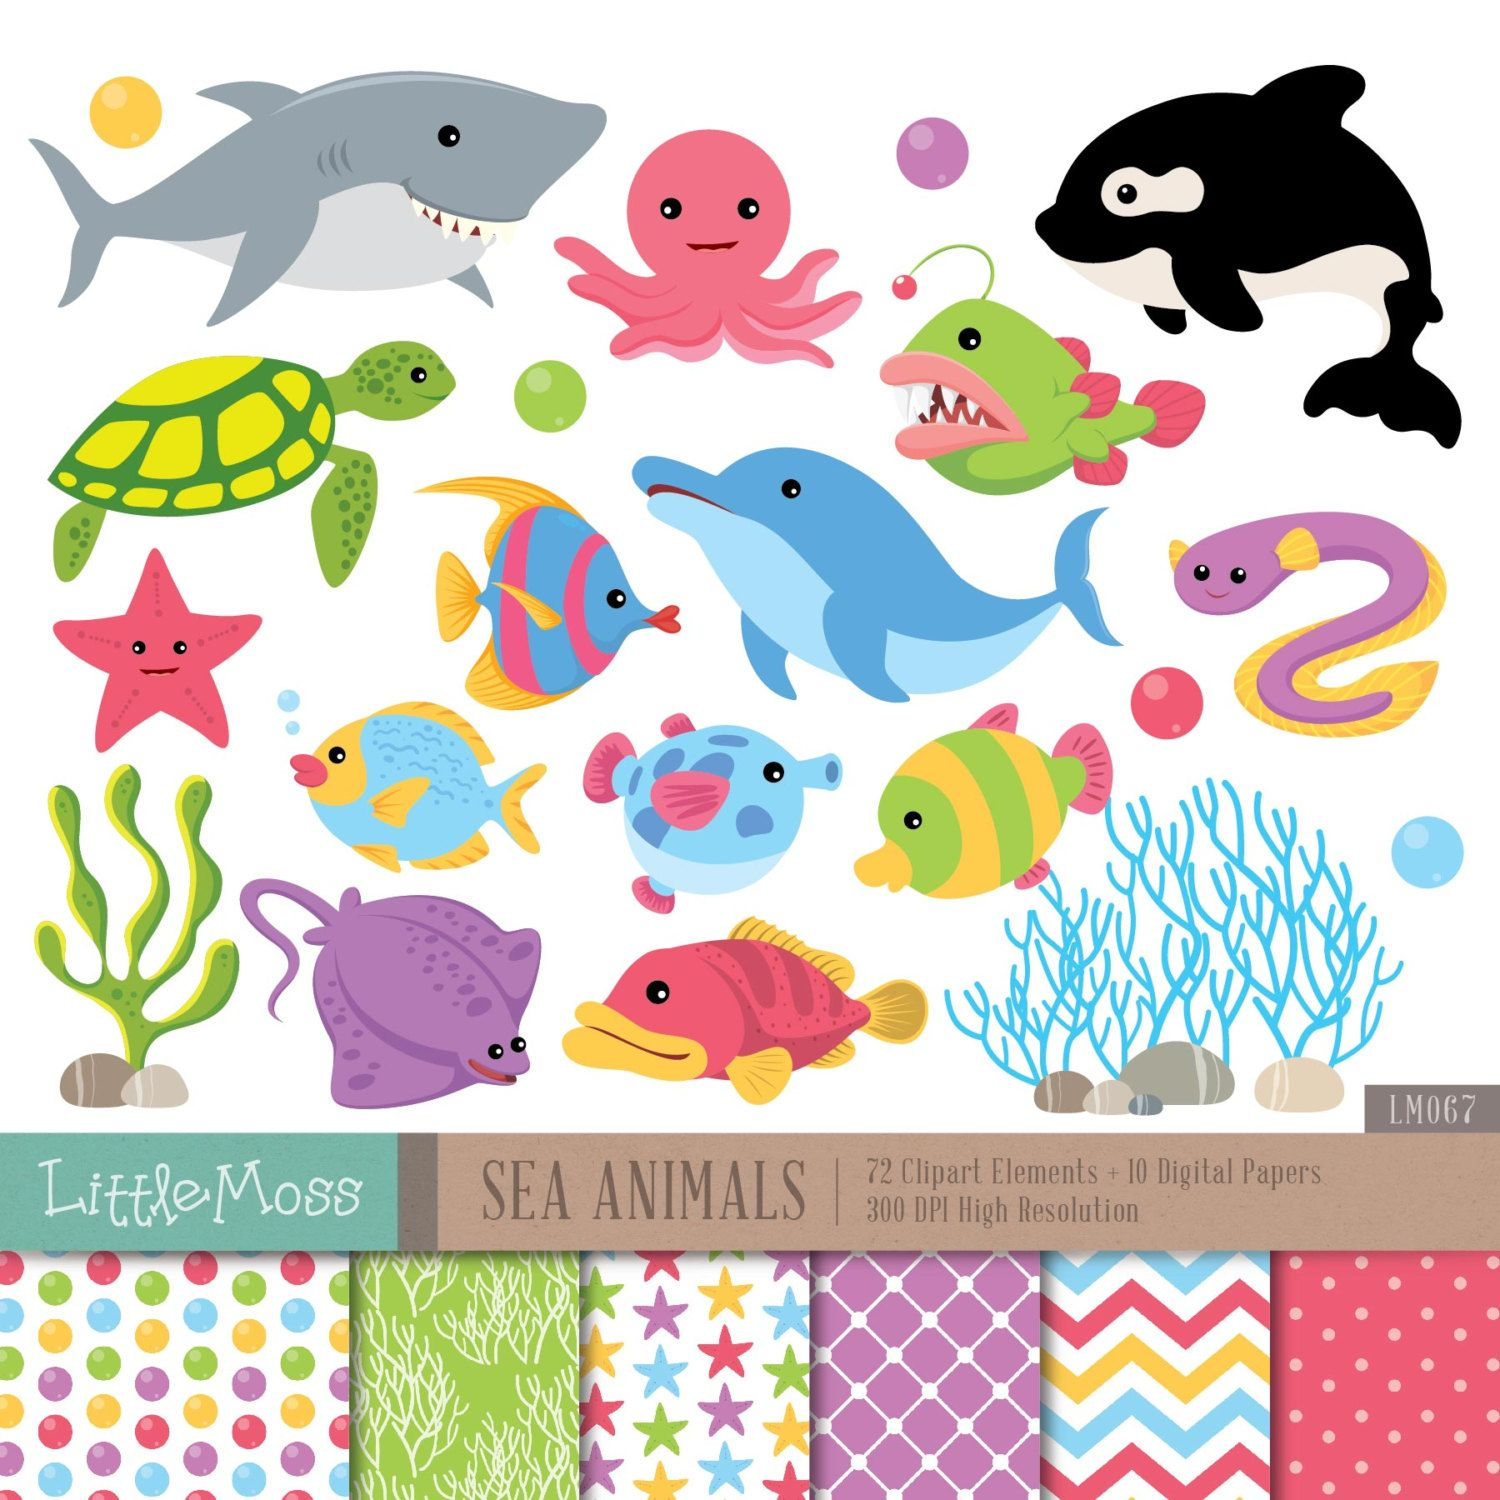 Sea animals digital clipart and papers under the sea clipart whale